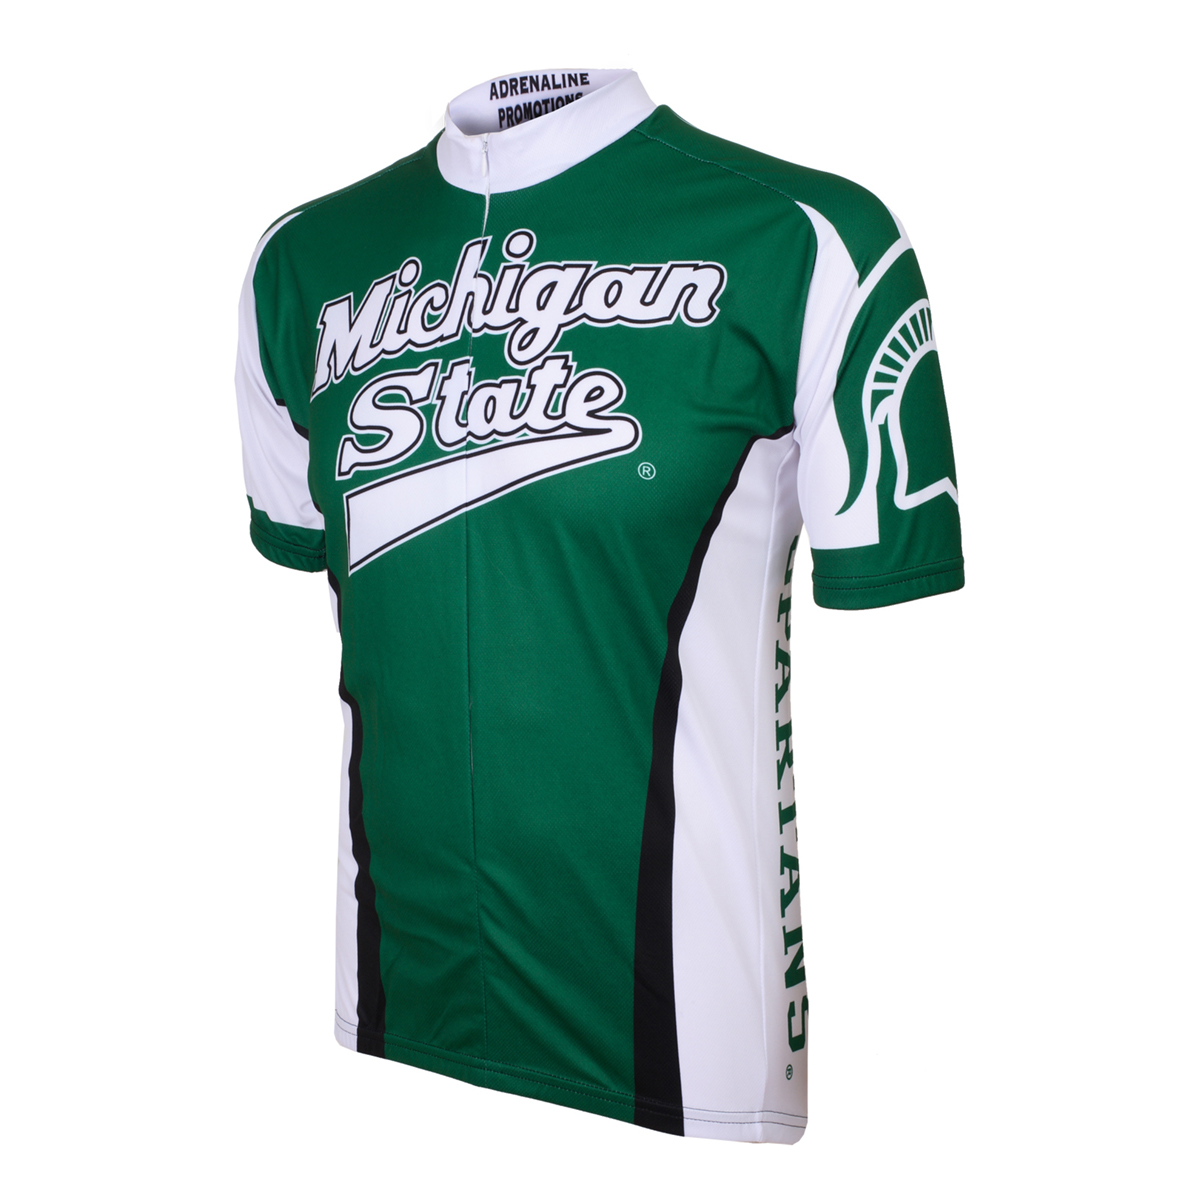 Adrenaline Promotions Michigan State Spartans Cycling Jersey